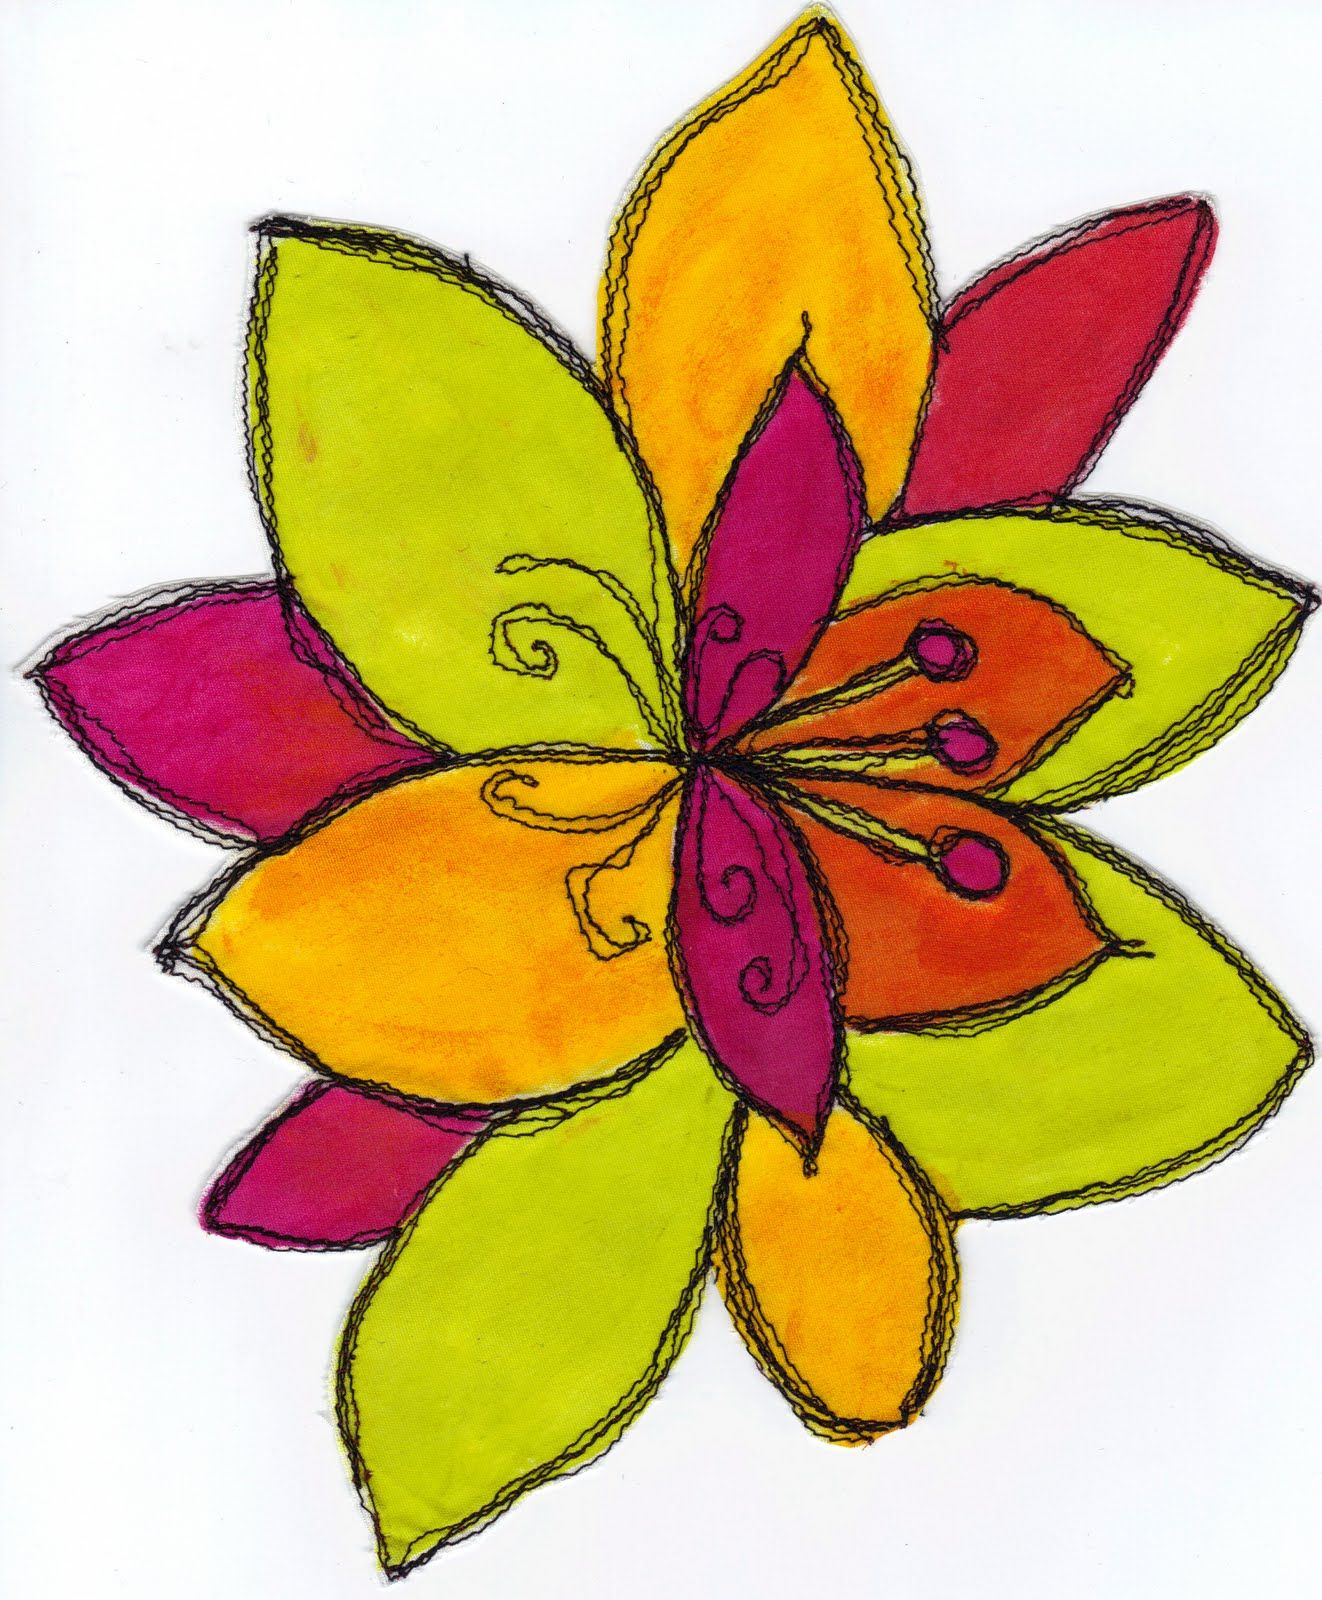 Easy pictures to draw of flowers beautiful flowers drawing easy pictures to draw of flowers beautiful flowers izmirmasajfo